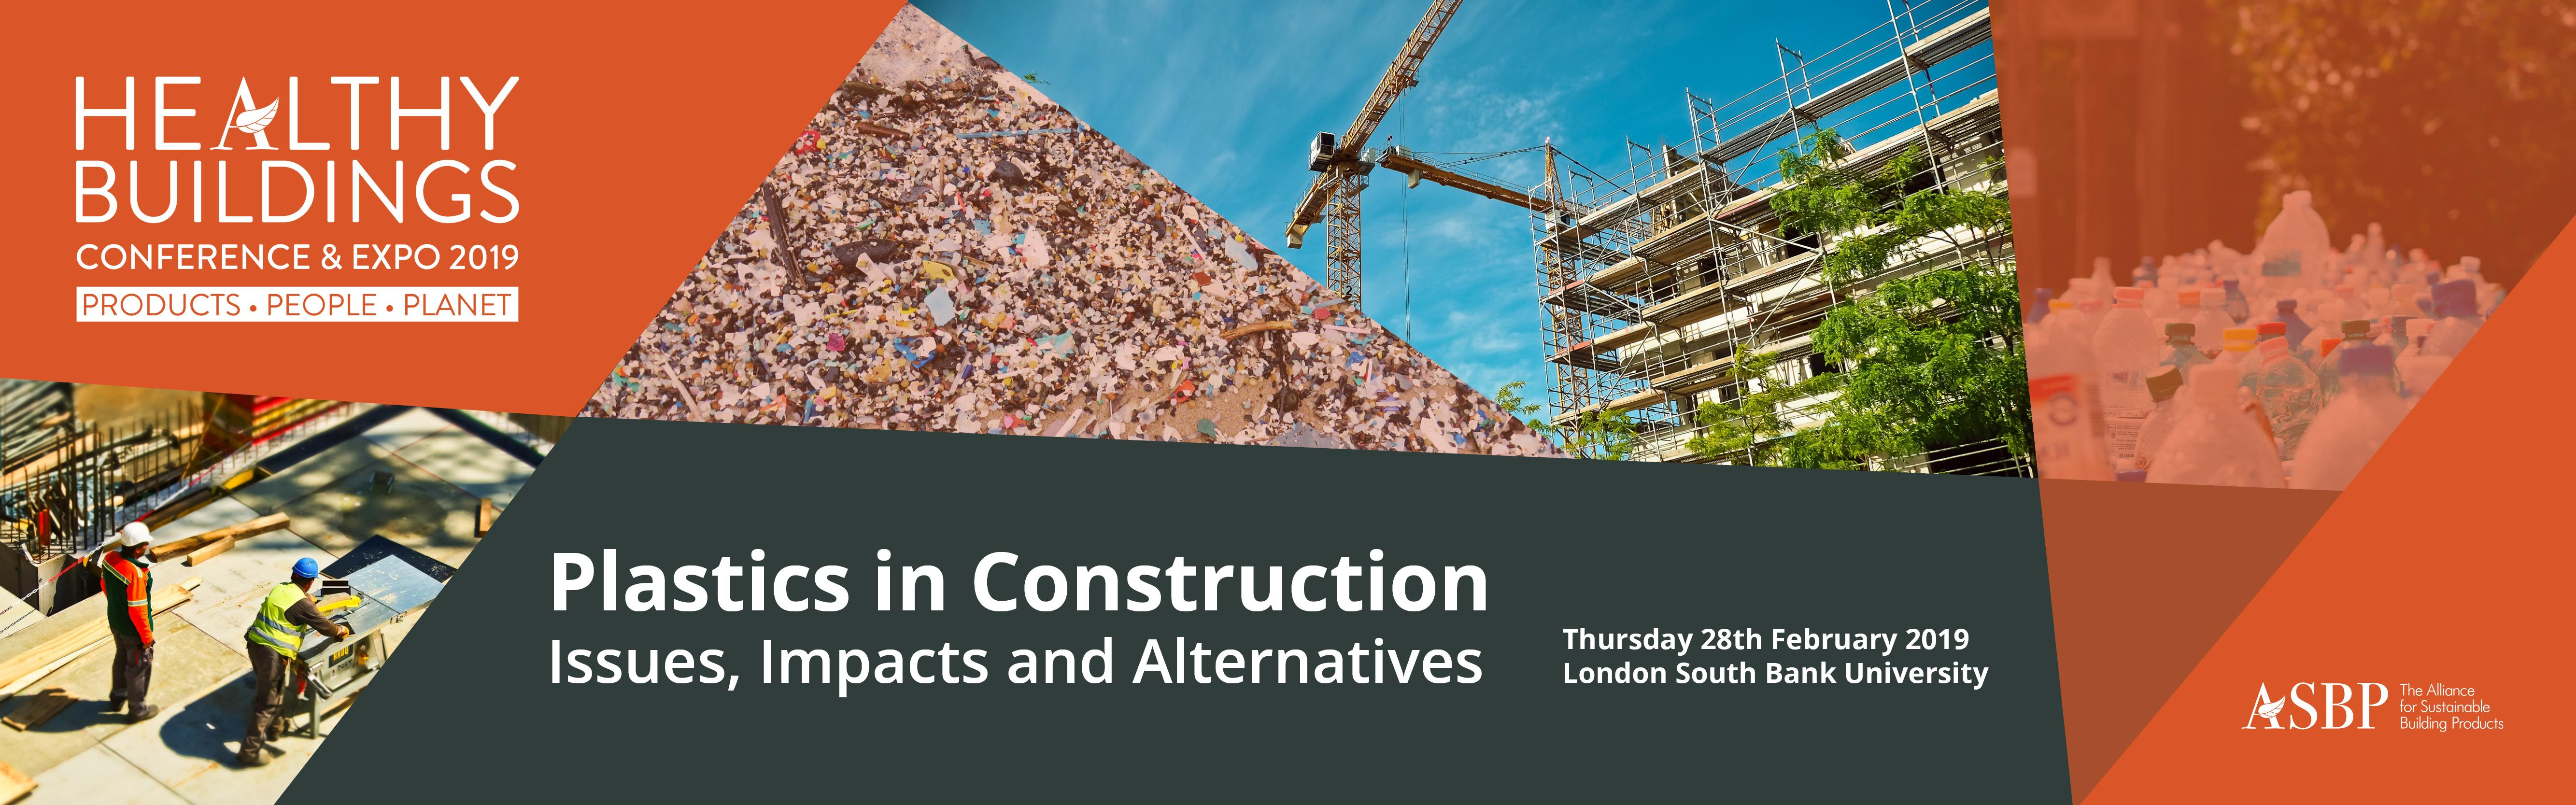 Plastics in Construction conference - Issues, Impacts and ...